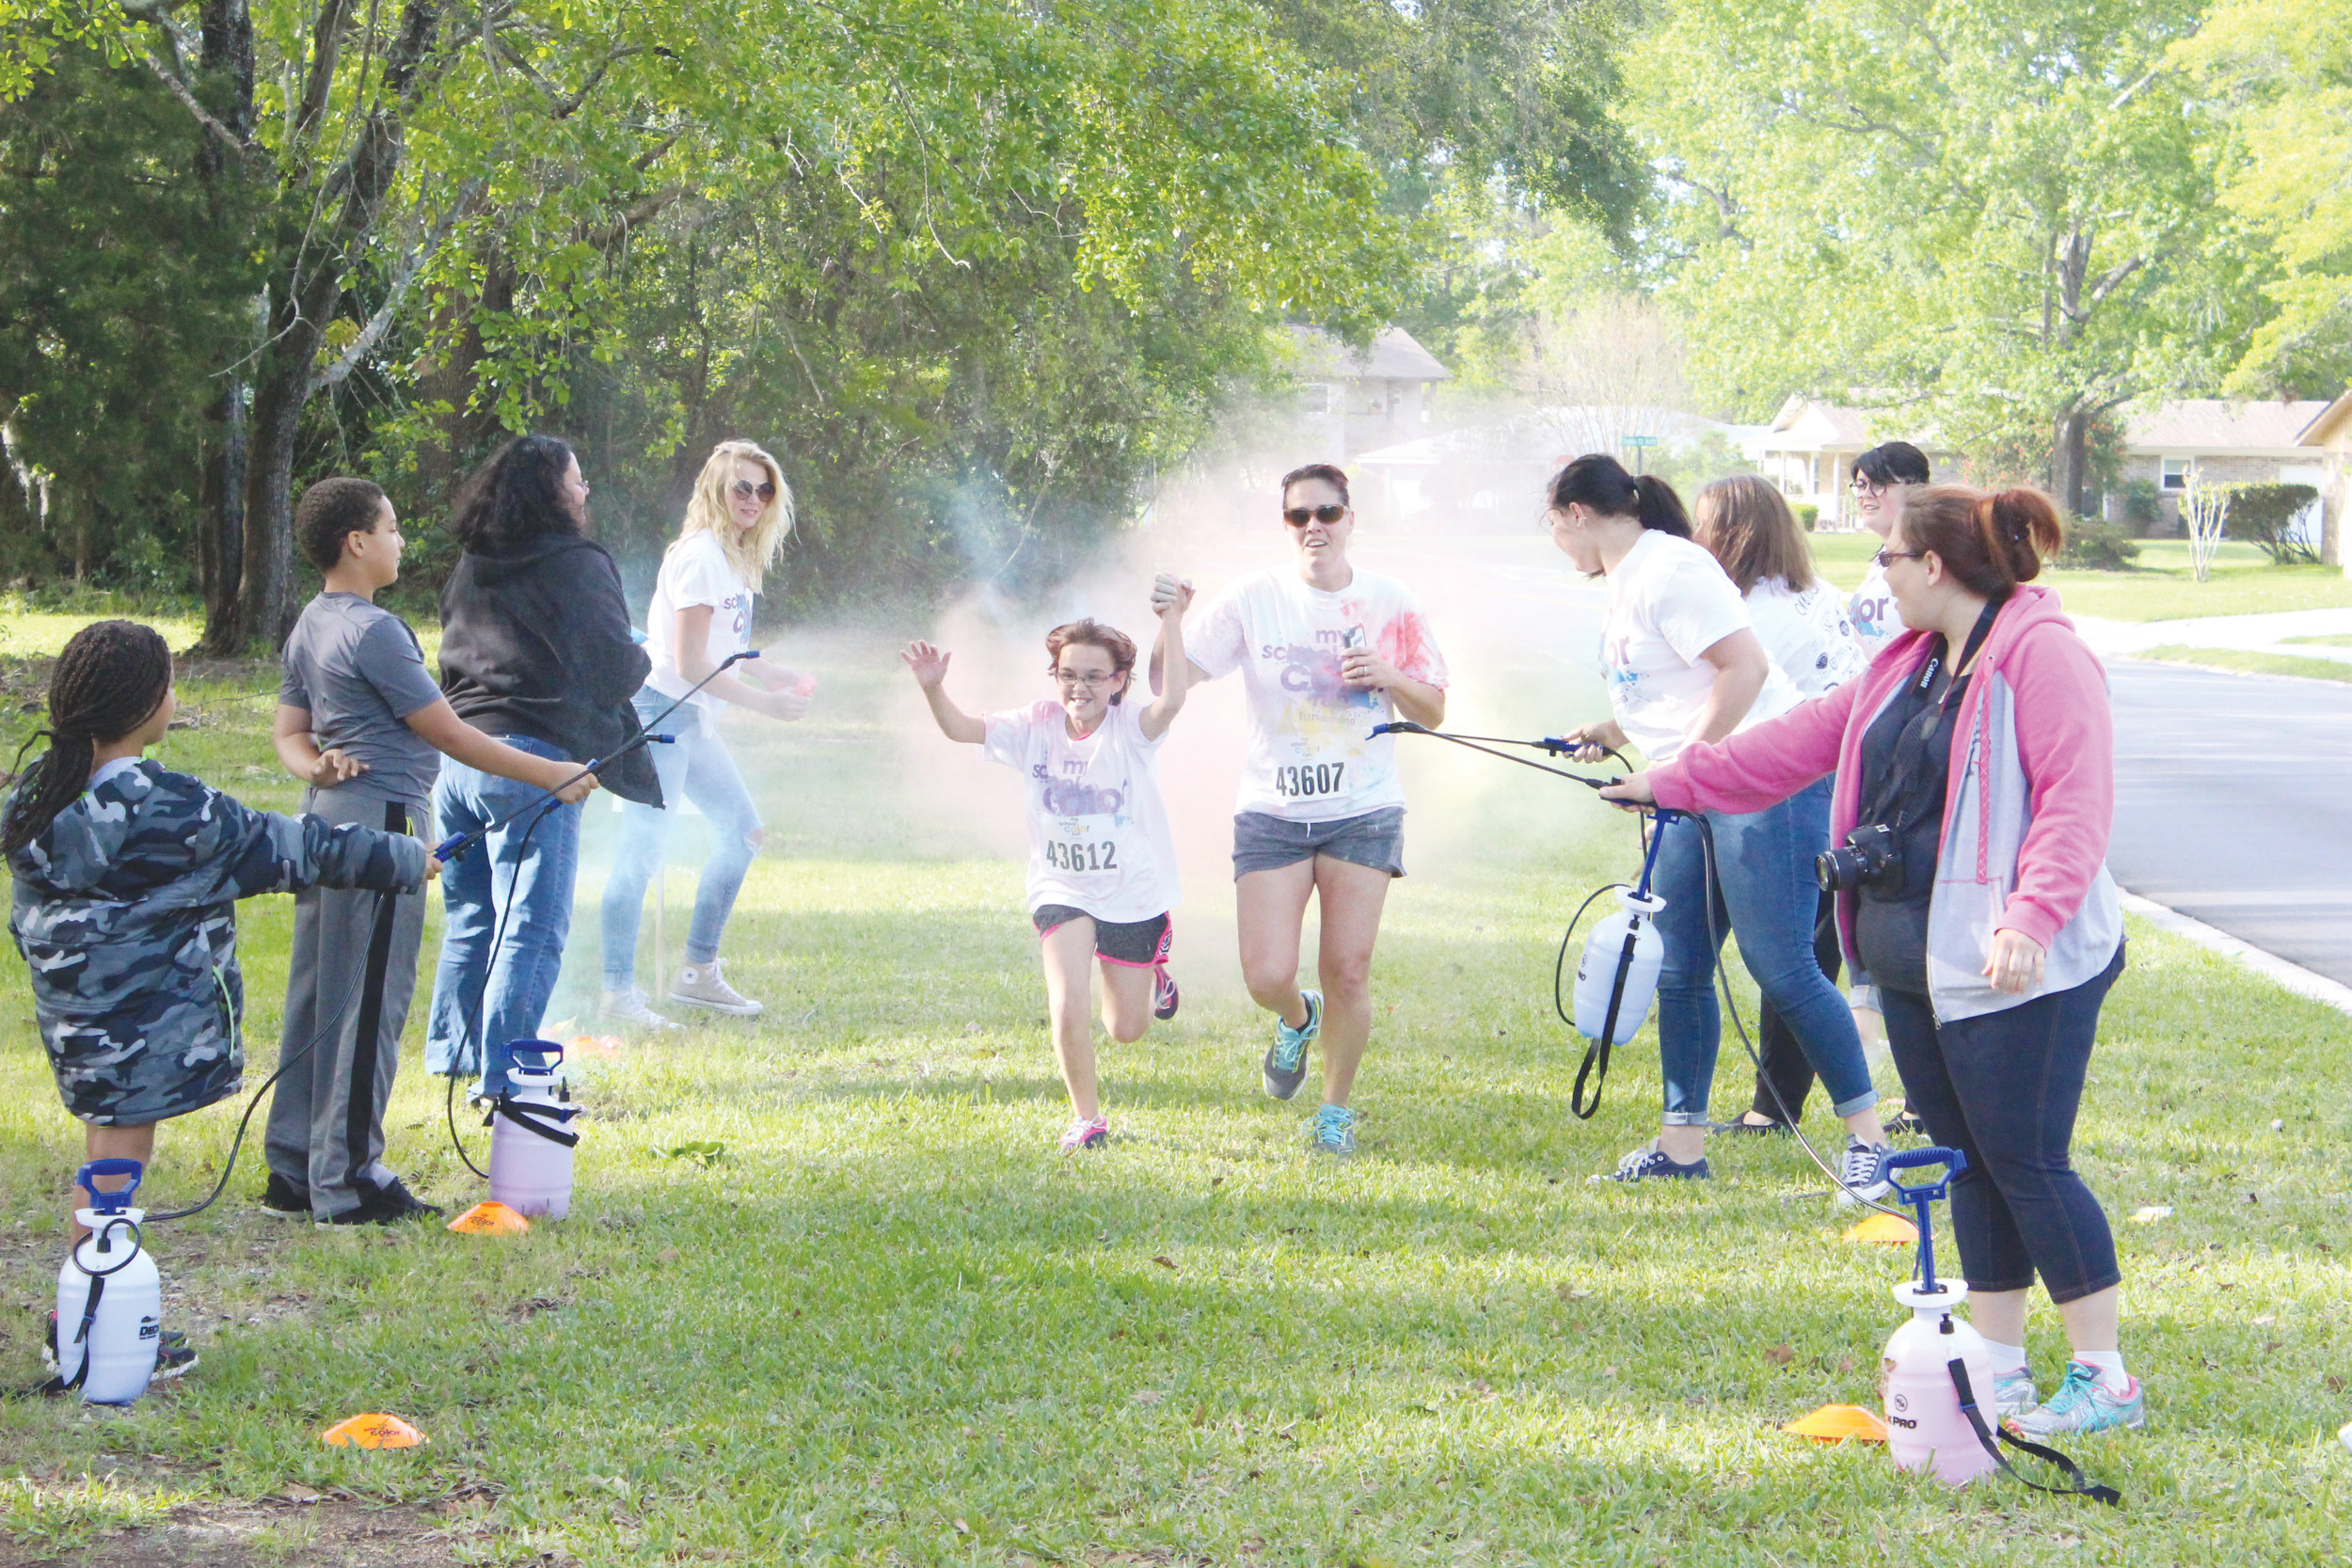 Mother-daughter Roberta and Silvia Tomlinson venture through cloud of color and spray at finish of Color Me Rad 5K staged at the OPPAA campus on Saturday.